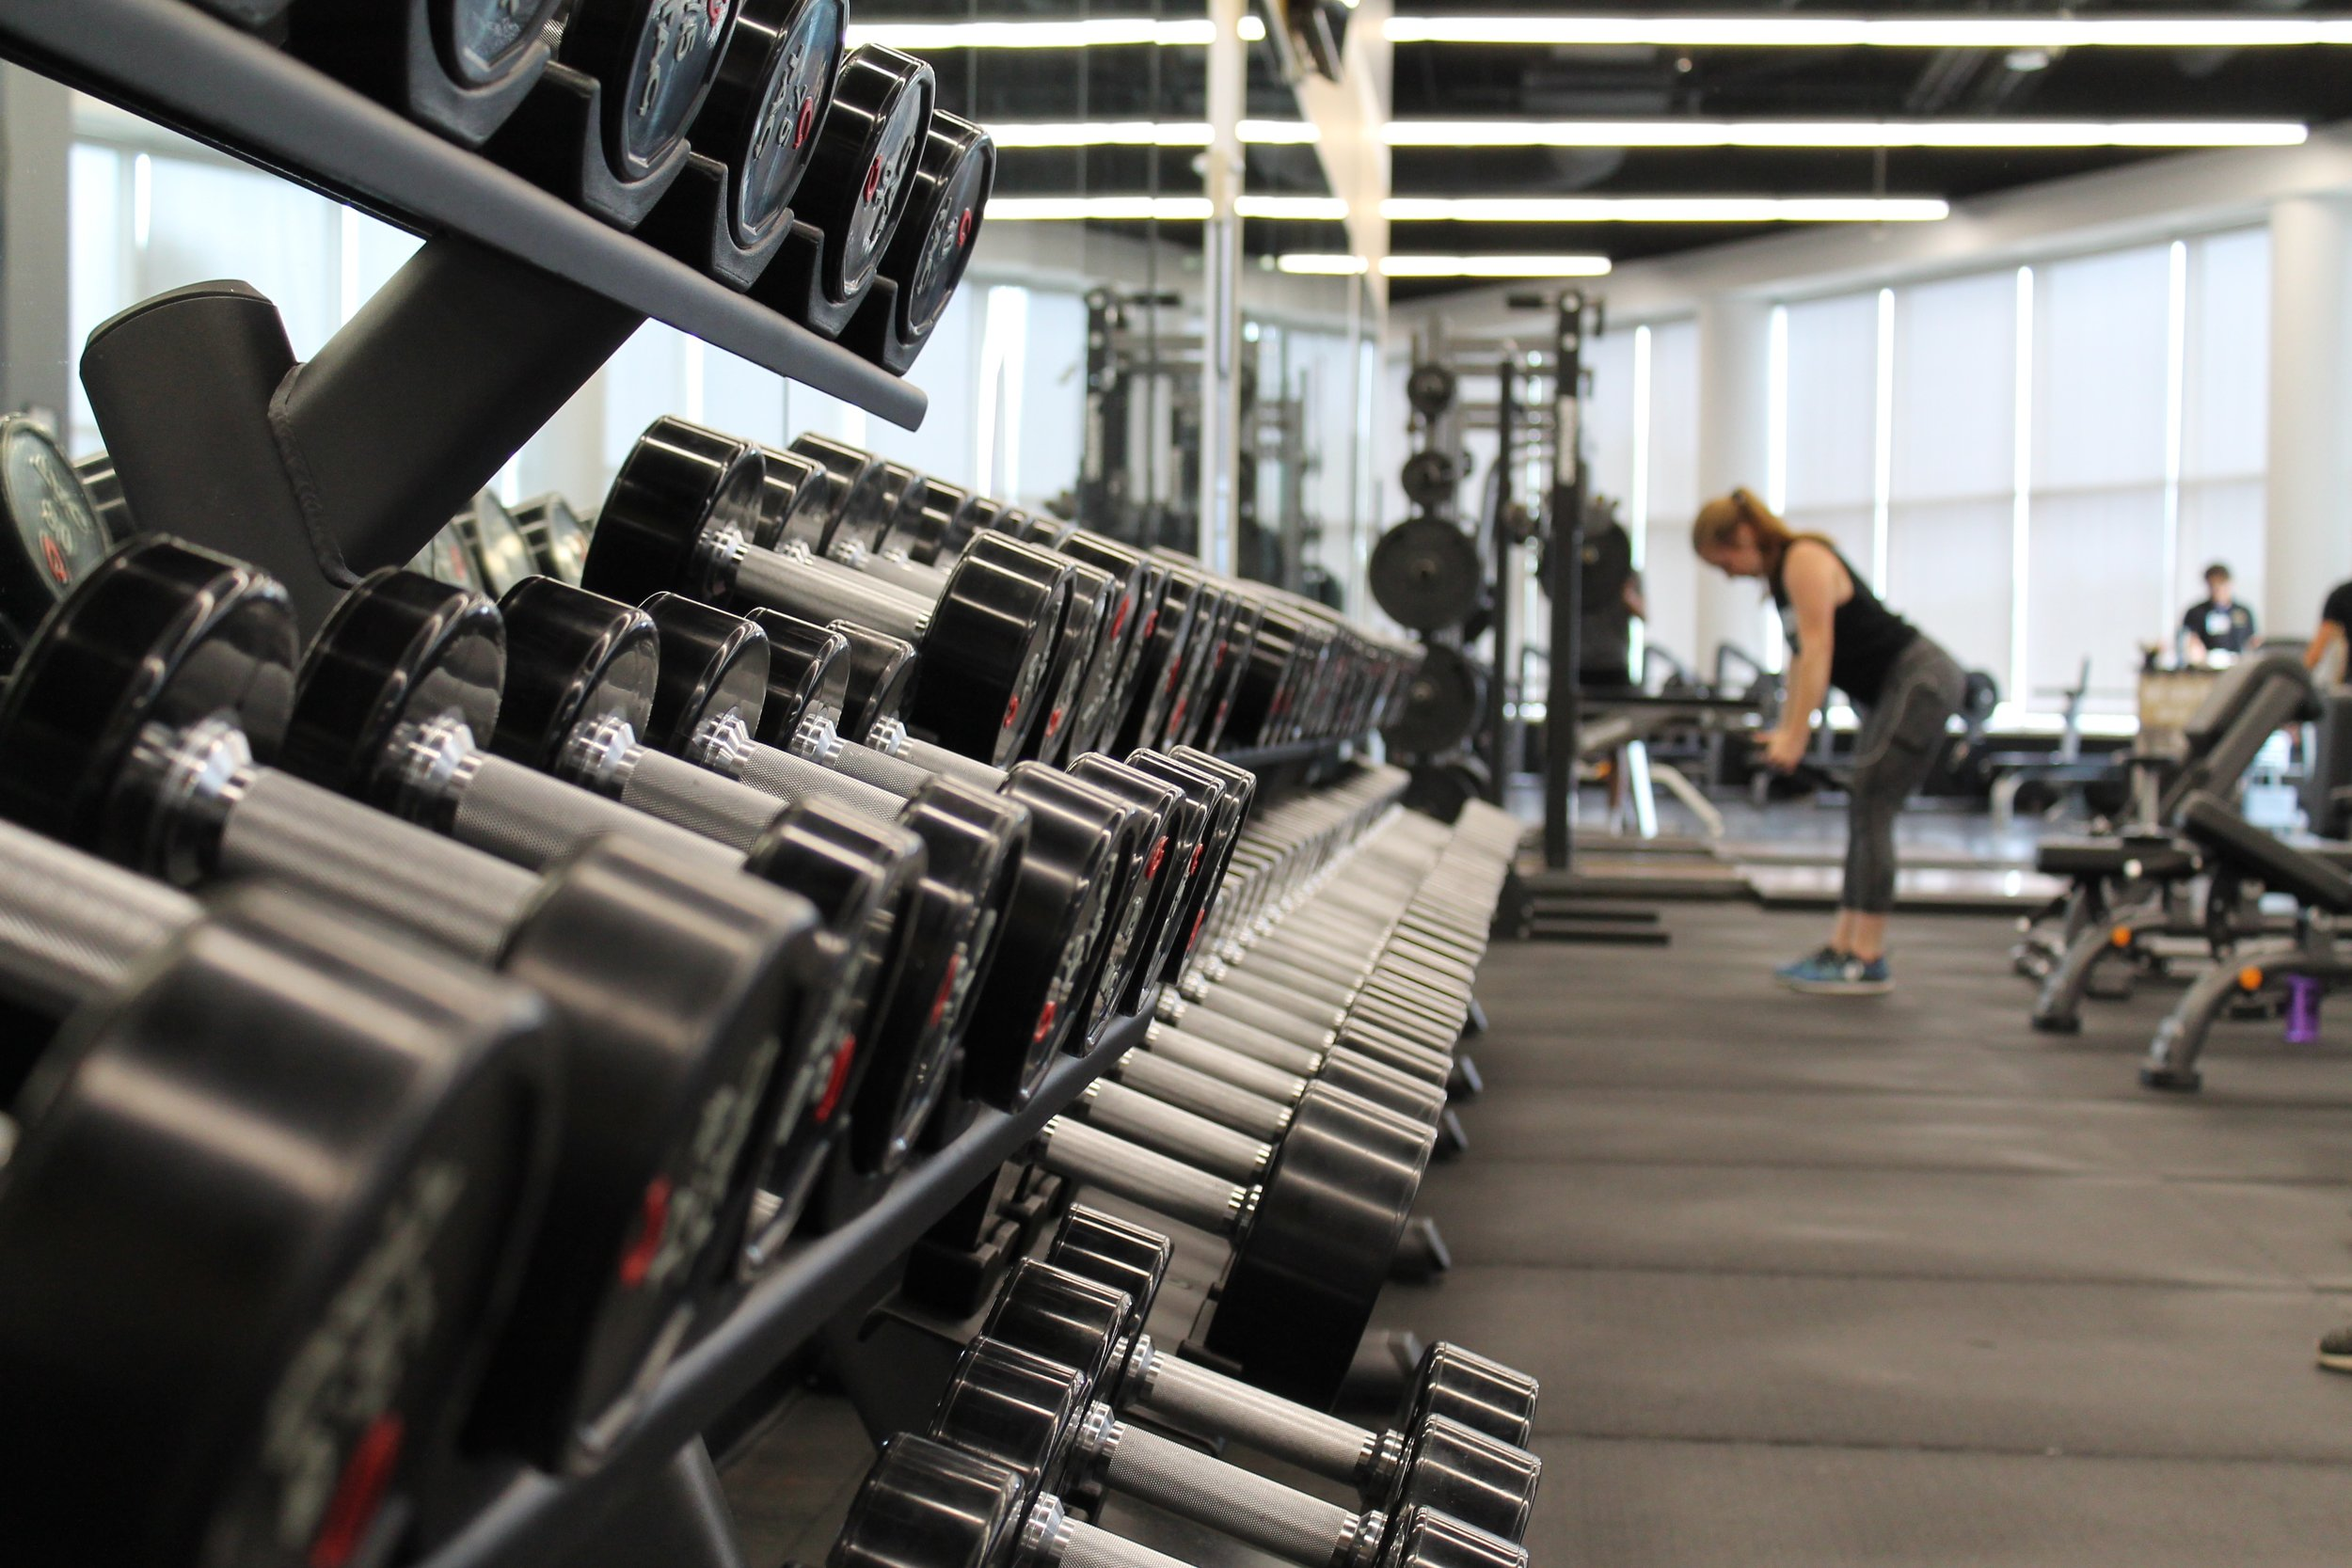 The Essential Guide To Creating Your Own Workout